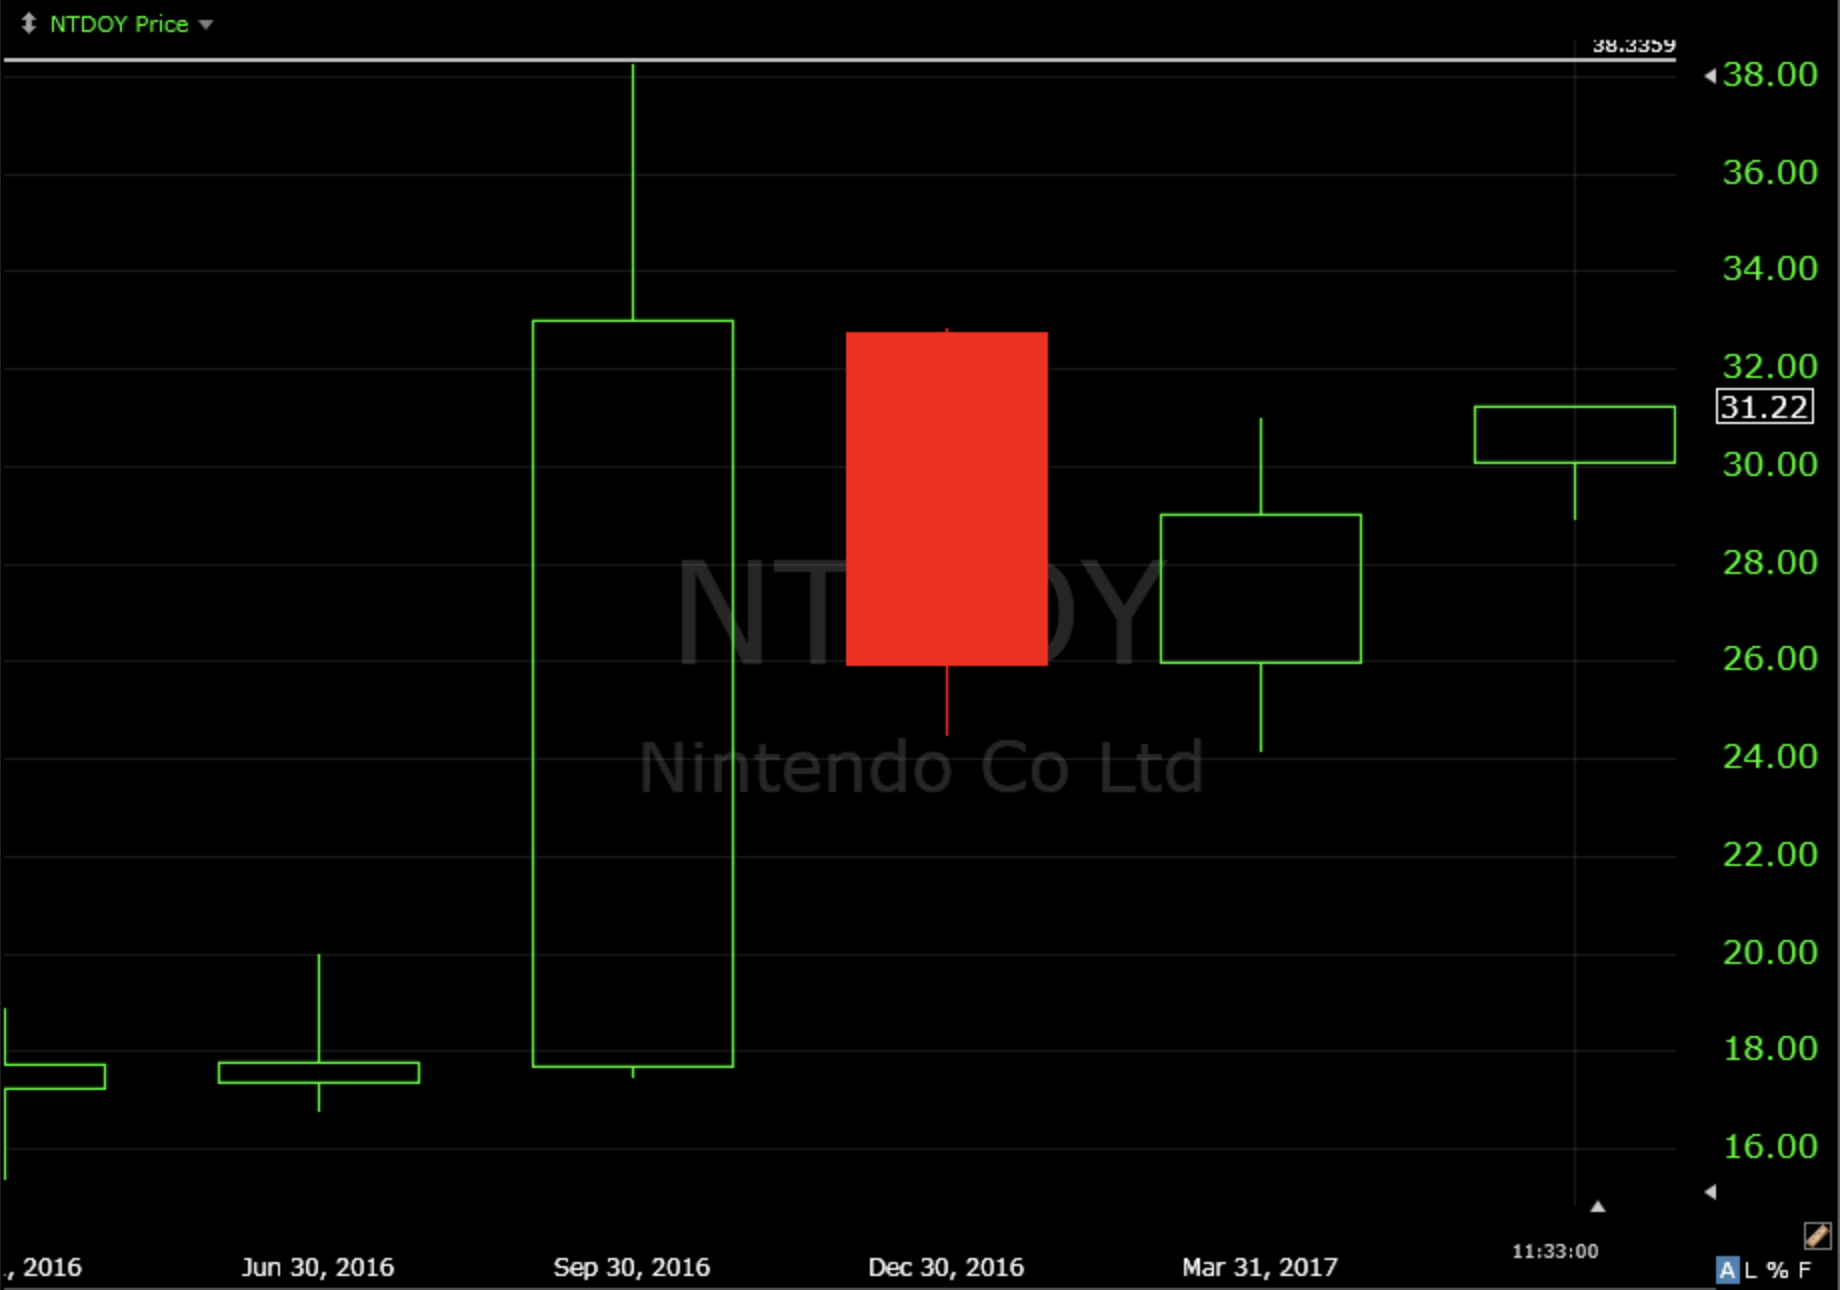 We May Finally Get A Resolution To The Battle Being Waged Inside That  Trading Range Formed During The Pokemania Of July 2016 Ntdoy Traded In A  Range Of